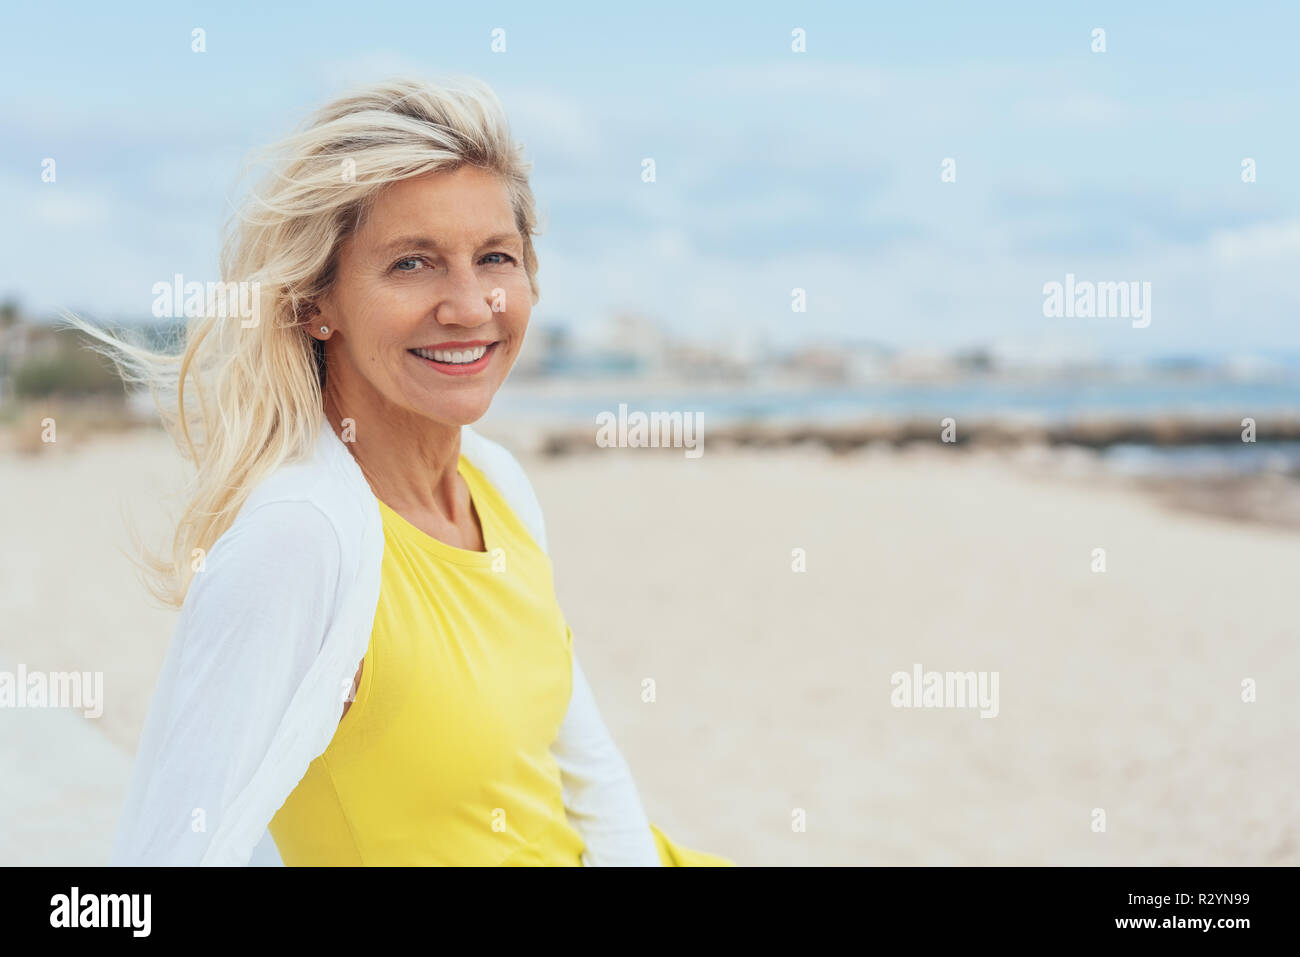 Attractive woman with tousled hair on a windy beach turning to smile at the camera with copy space - Stock Image